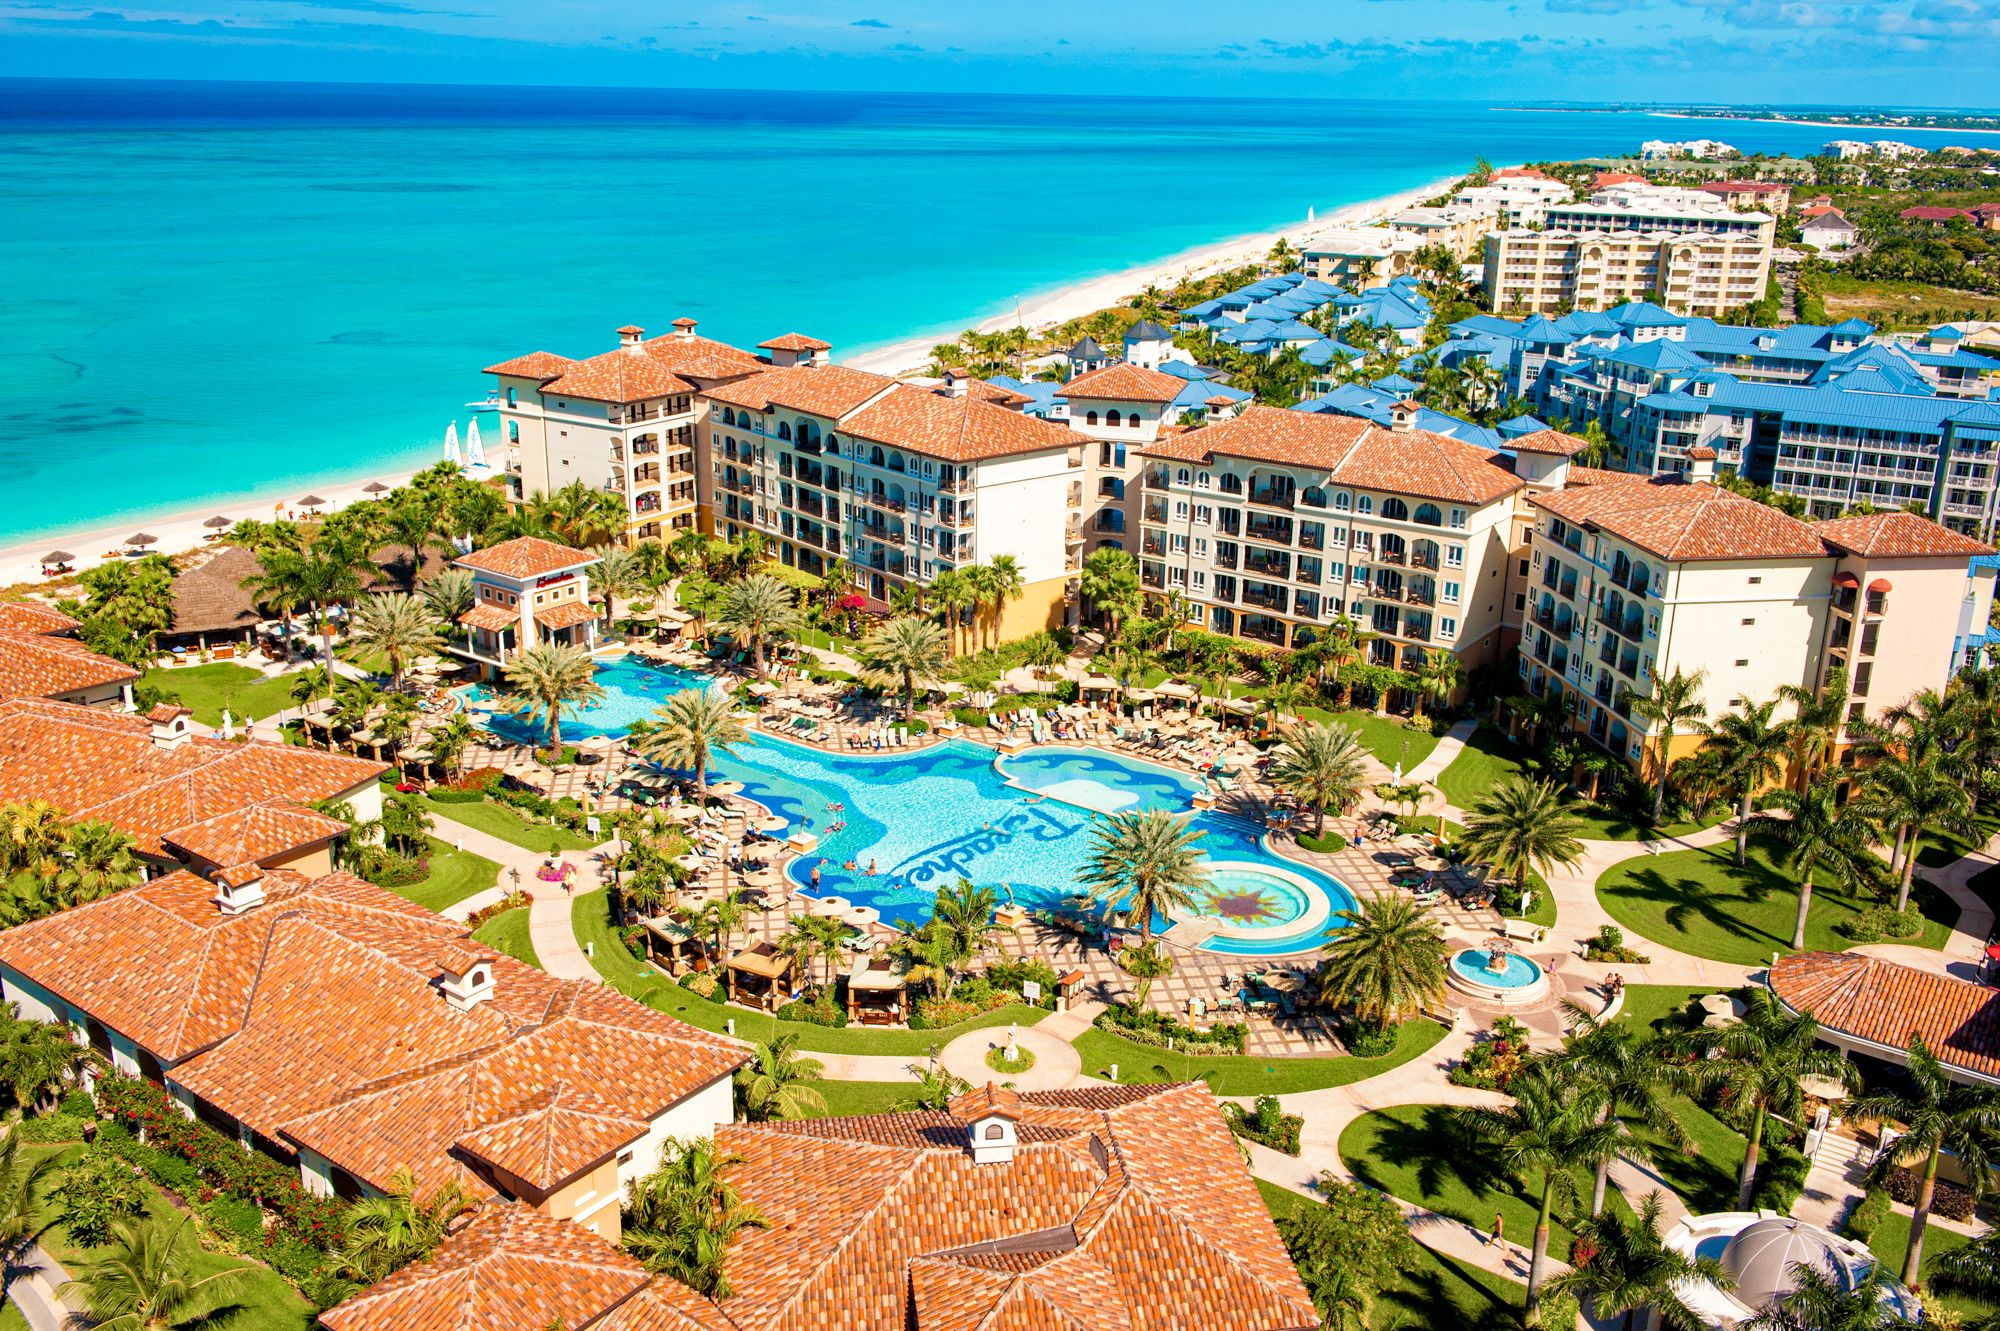 Beaches Turks Caicos Overview